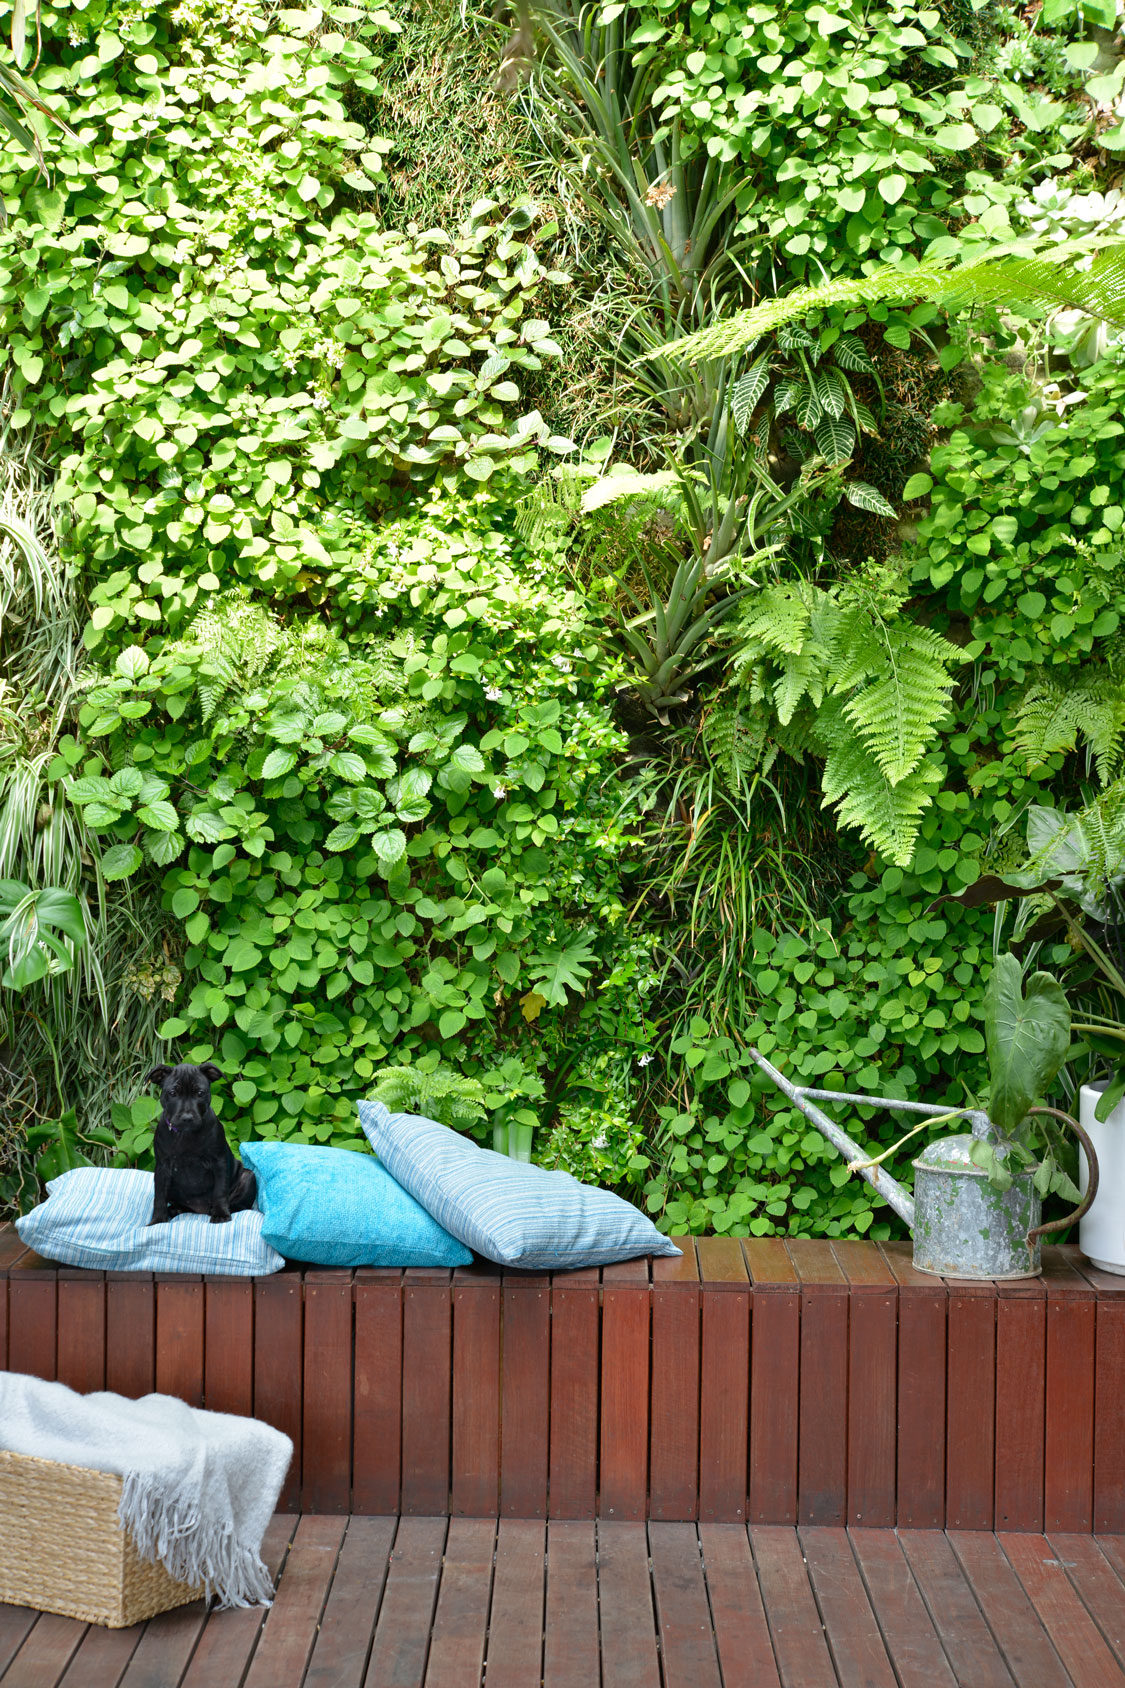 4 easy small garden ideas sa garden and home for Easy garden ideas for small spaces